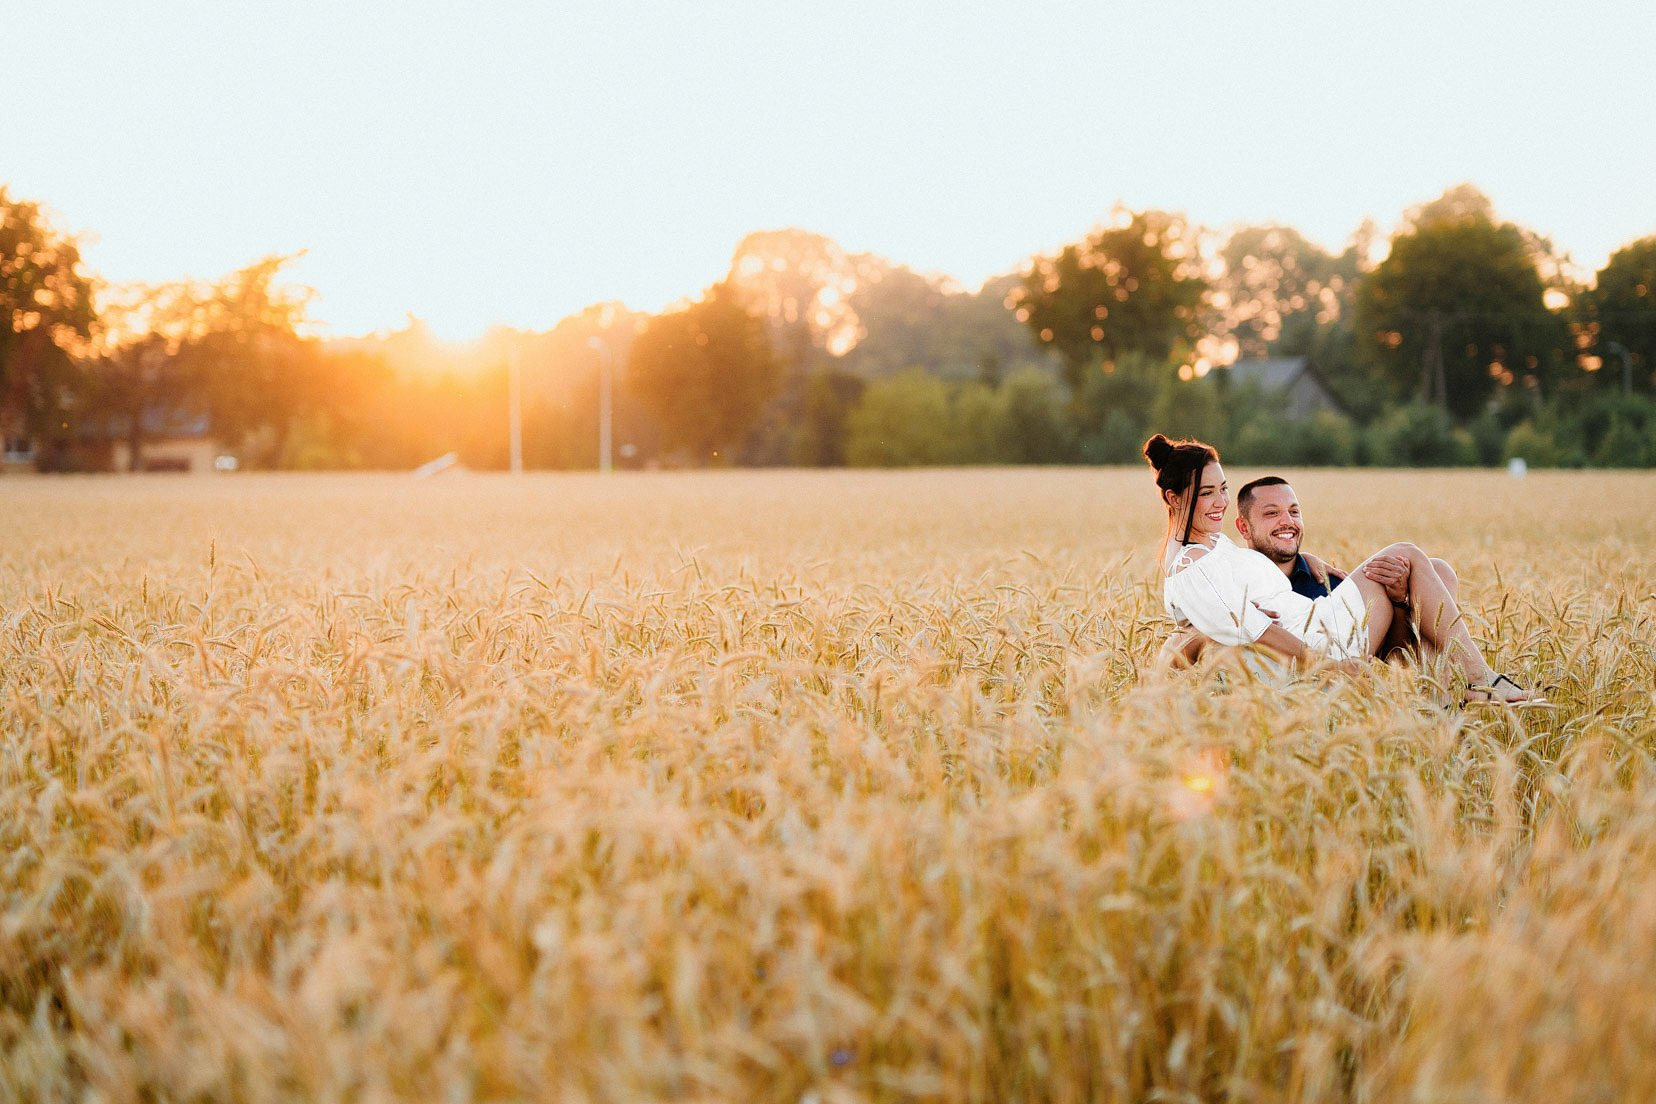 destination engagement photography 58 - Destination Engagement Photography - Anna + Adam